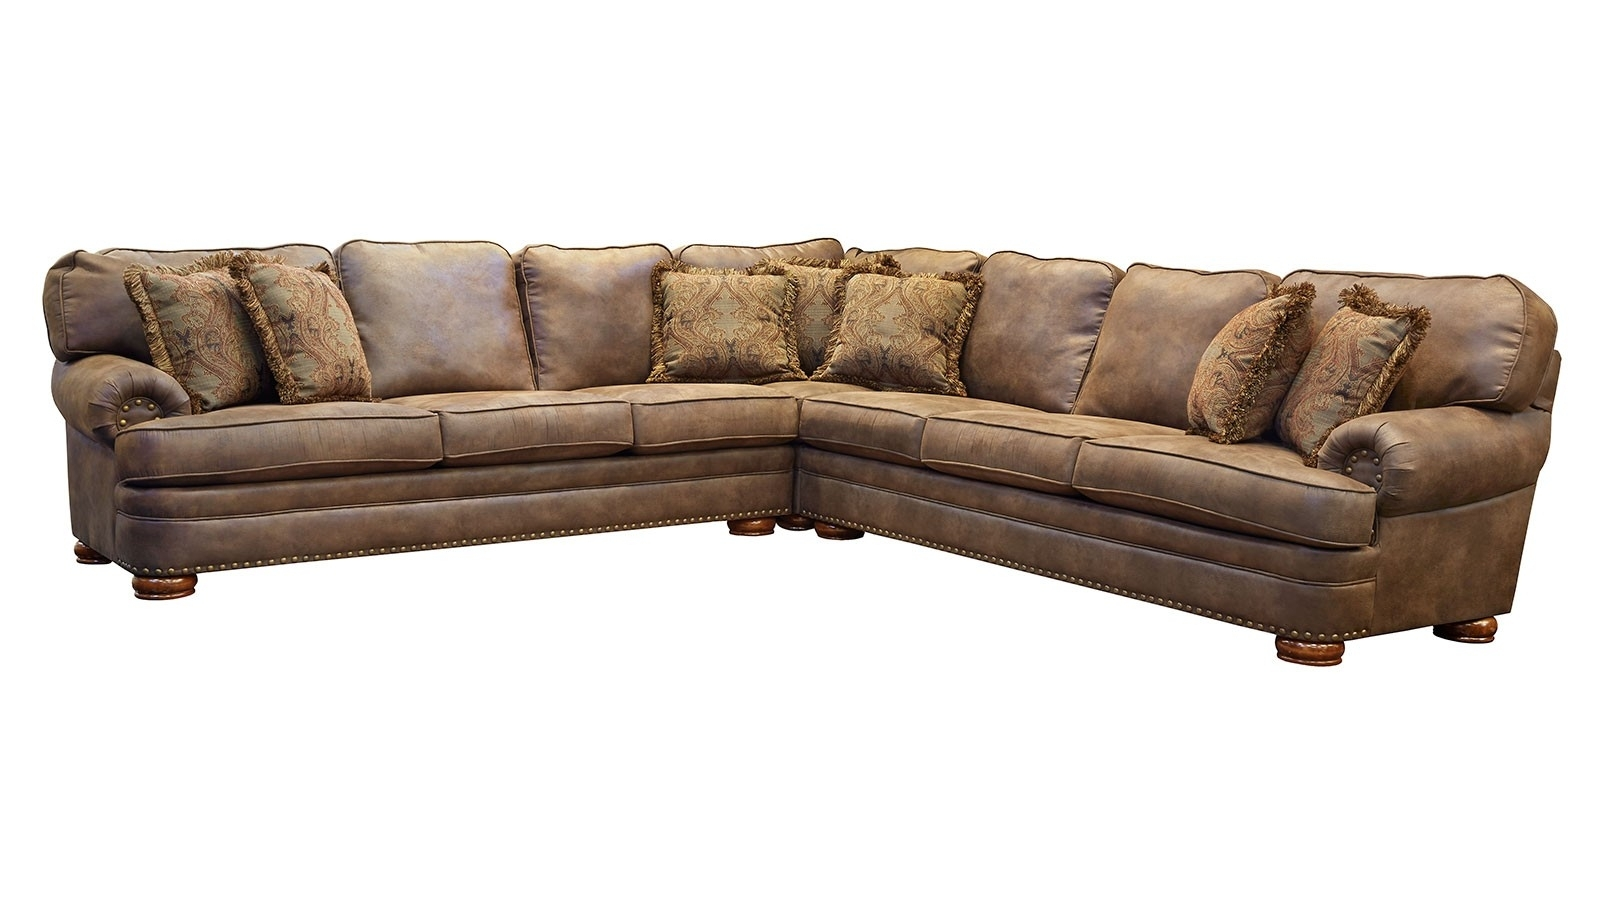 El Paso Sectional | Gallery Furniture Intended For El Paso Tx Sectional Sofas (View 9 of 10)